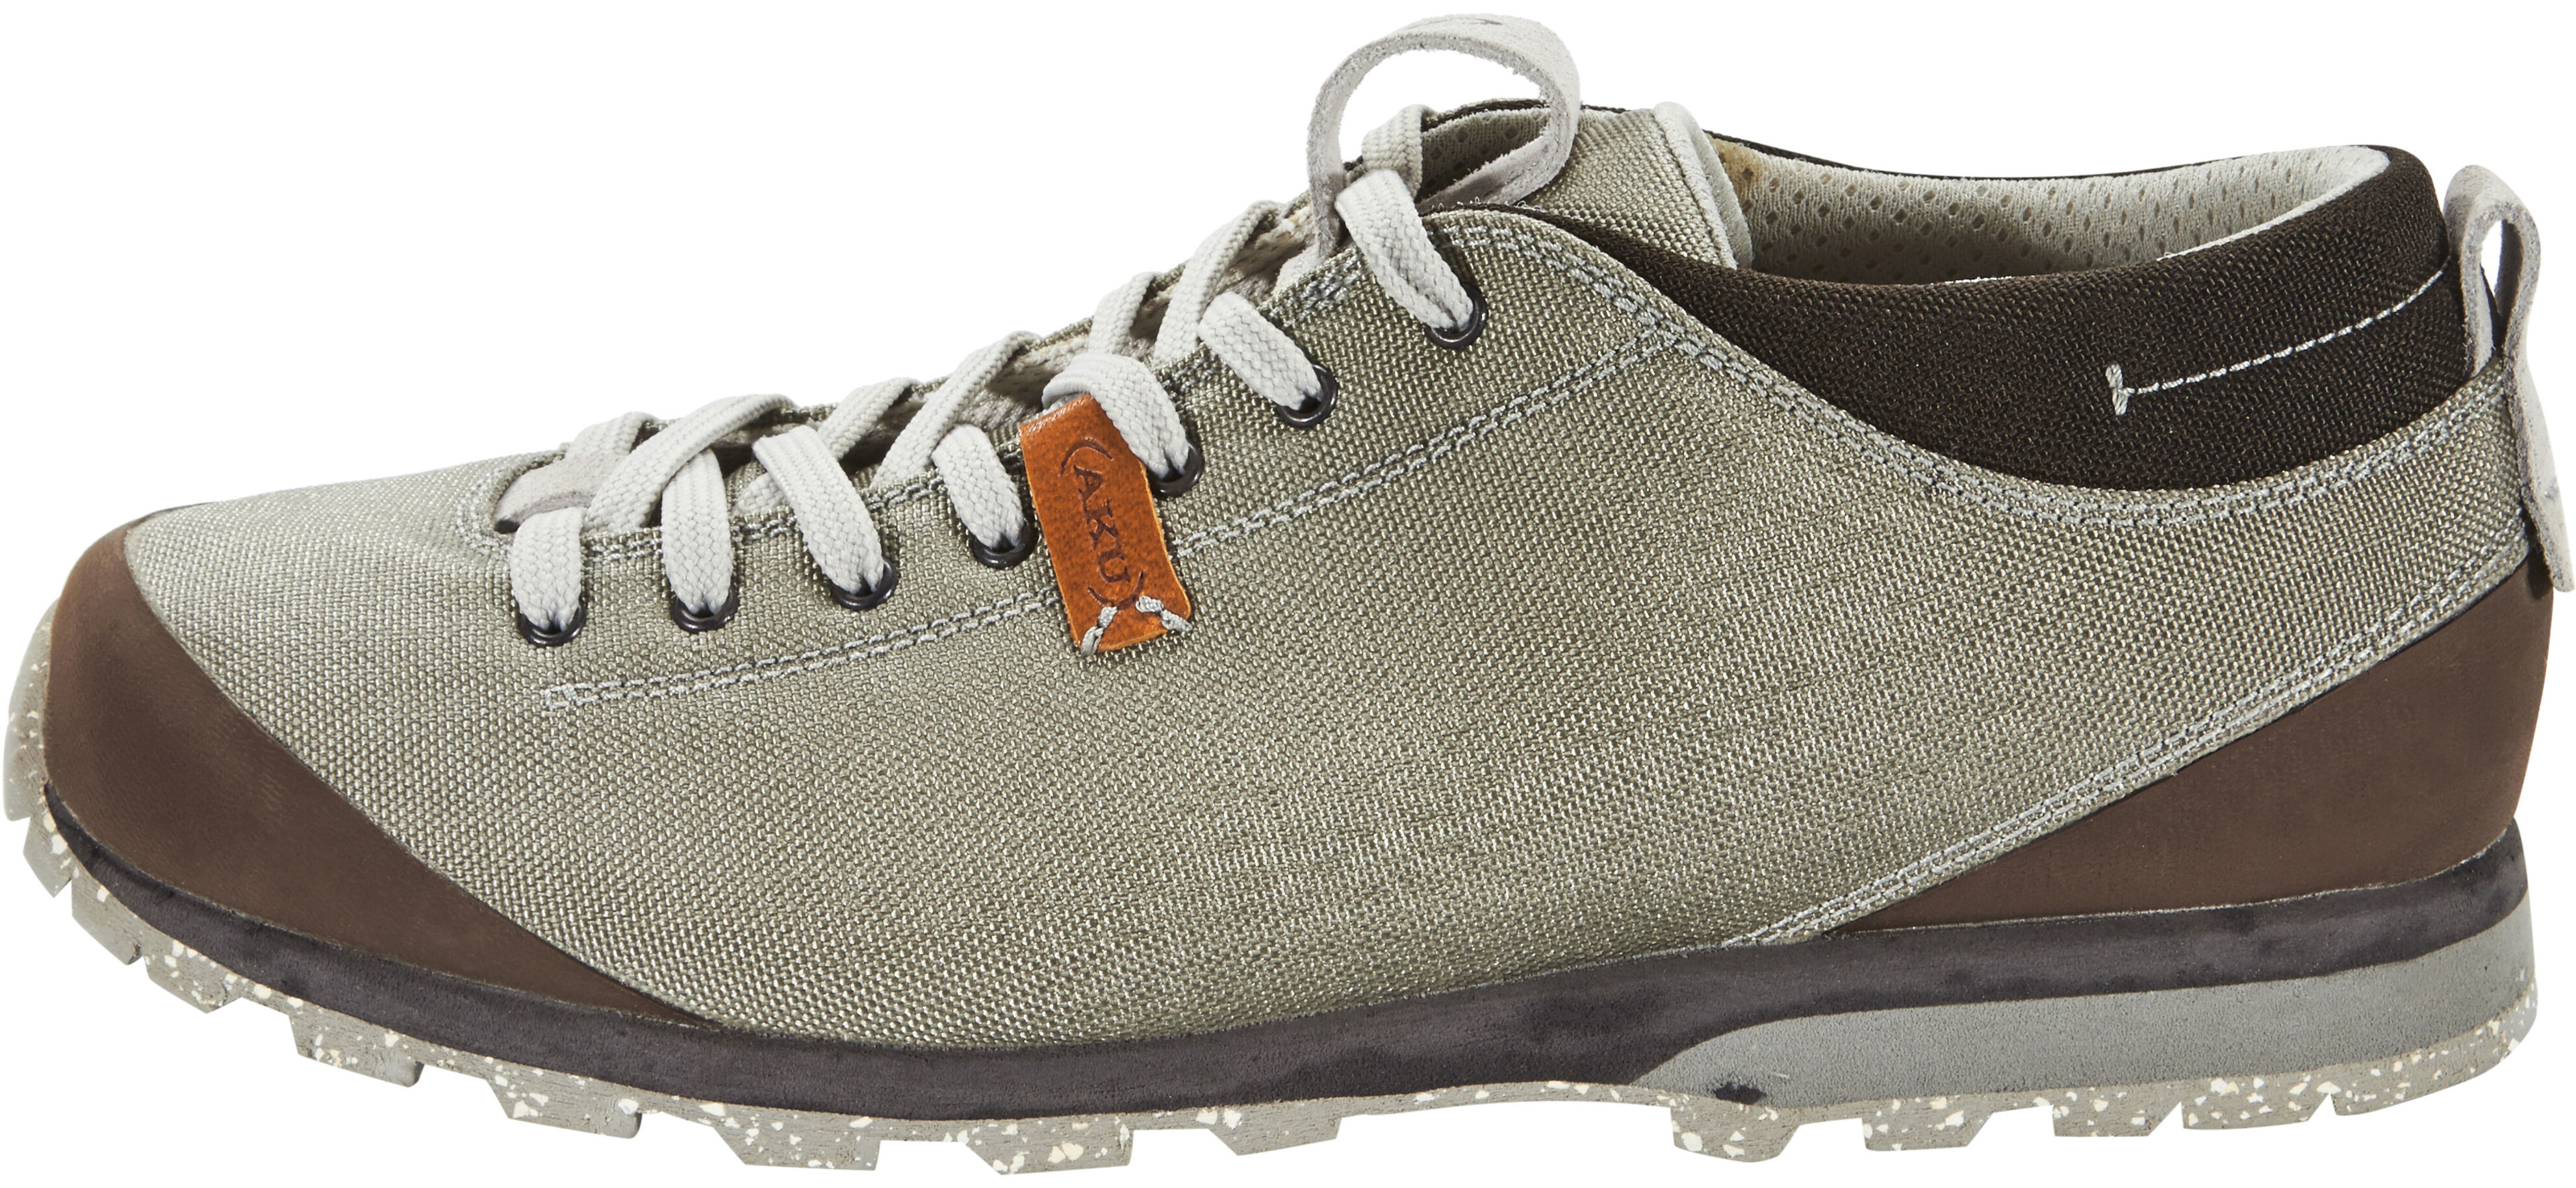 new arrival 597bc 37427 AKU Bellamont Air - Chaussures Homme - beige